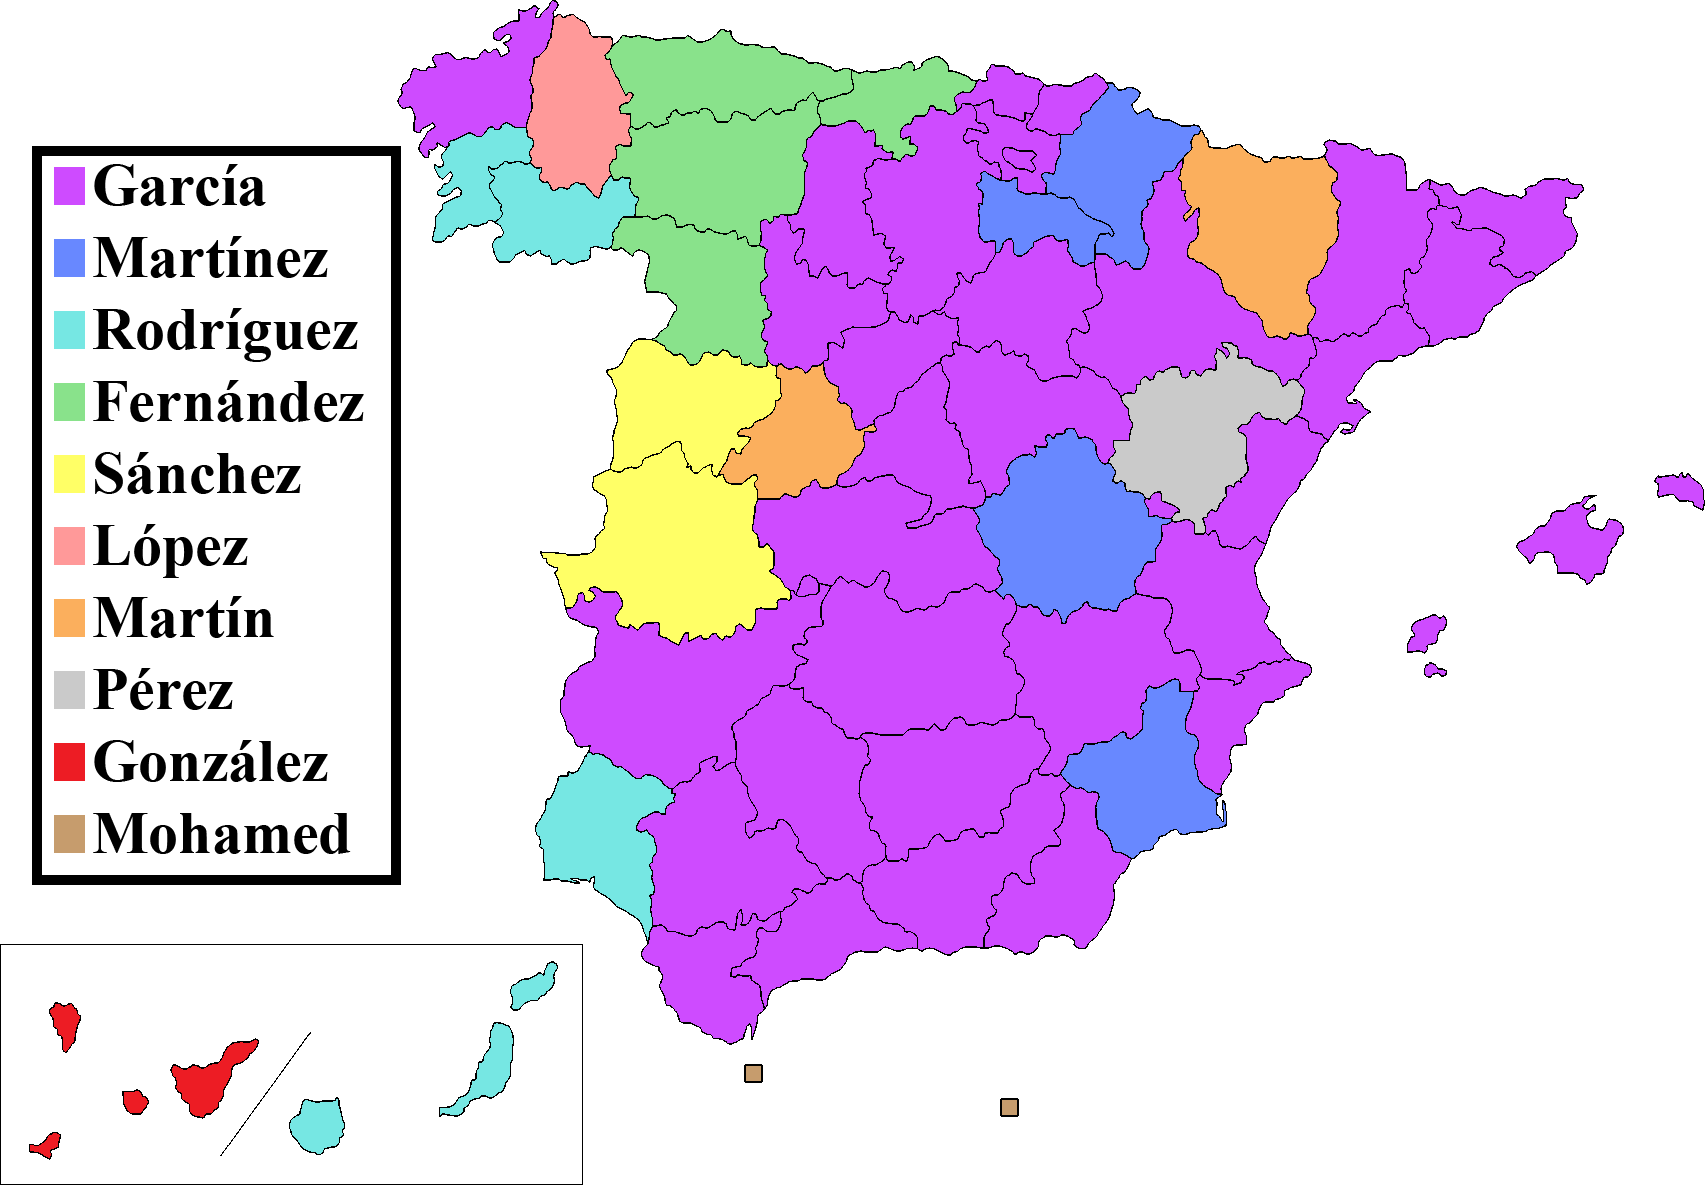 FileSpanish Surnames By Province Of Residencepng Wikimedia Commons - Wikimedia commons us maps most popular